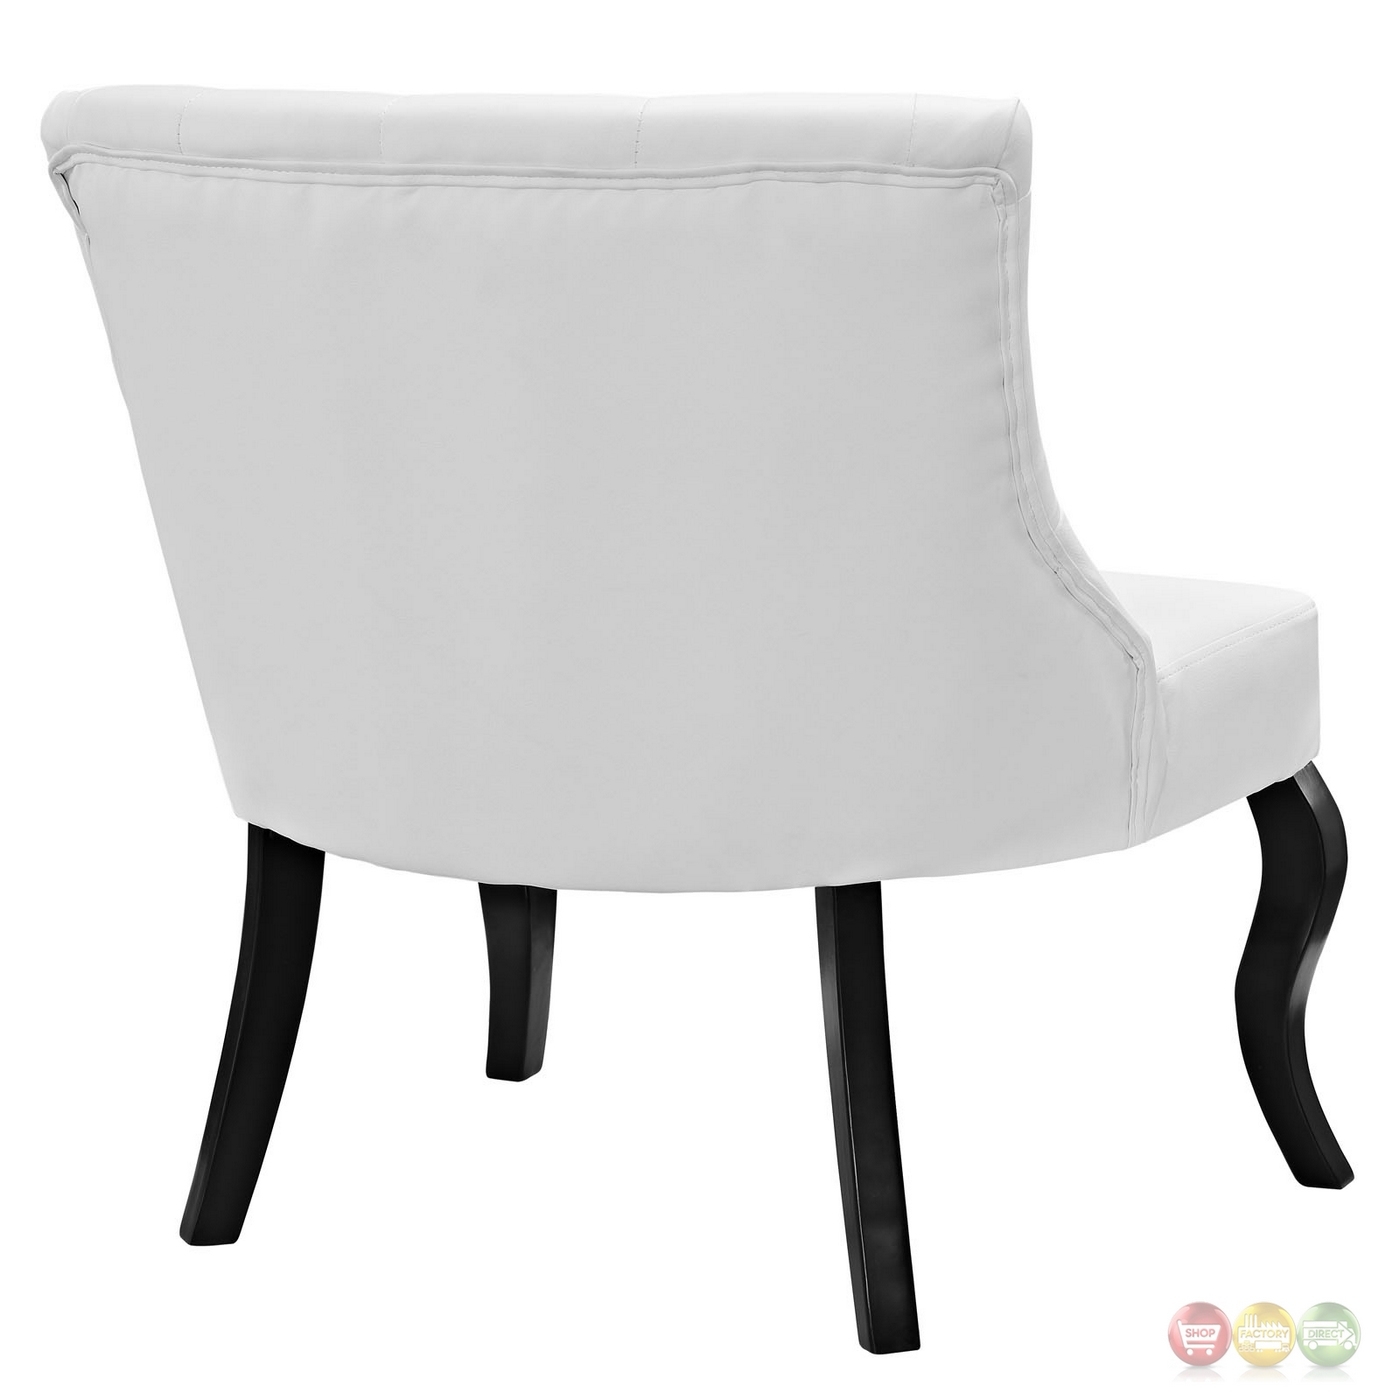 White Tufted Accent Chair Royal Modern Button Tufted Vinyl Accent Chair W Curved